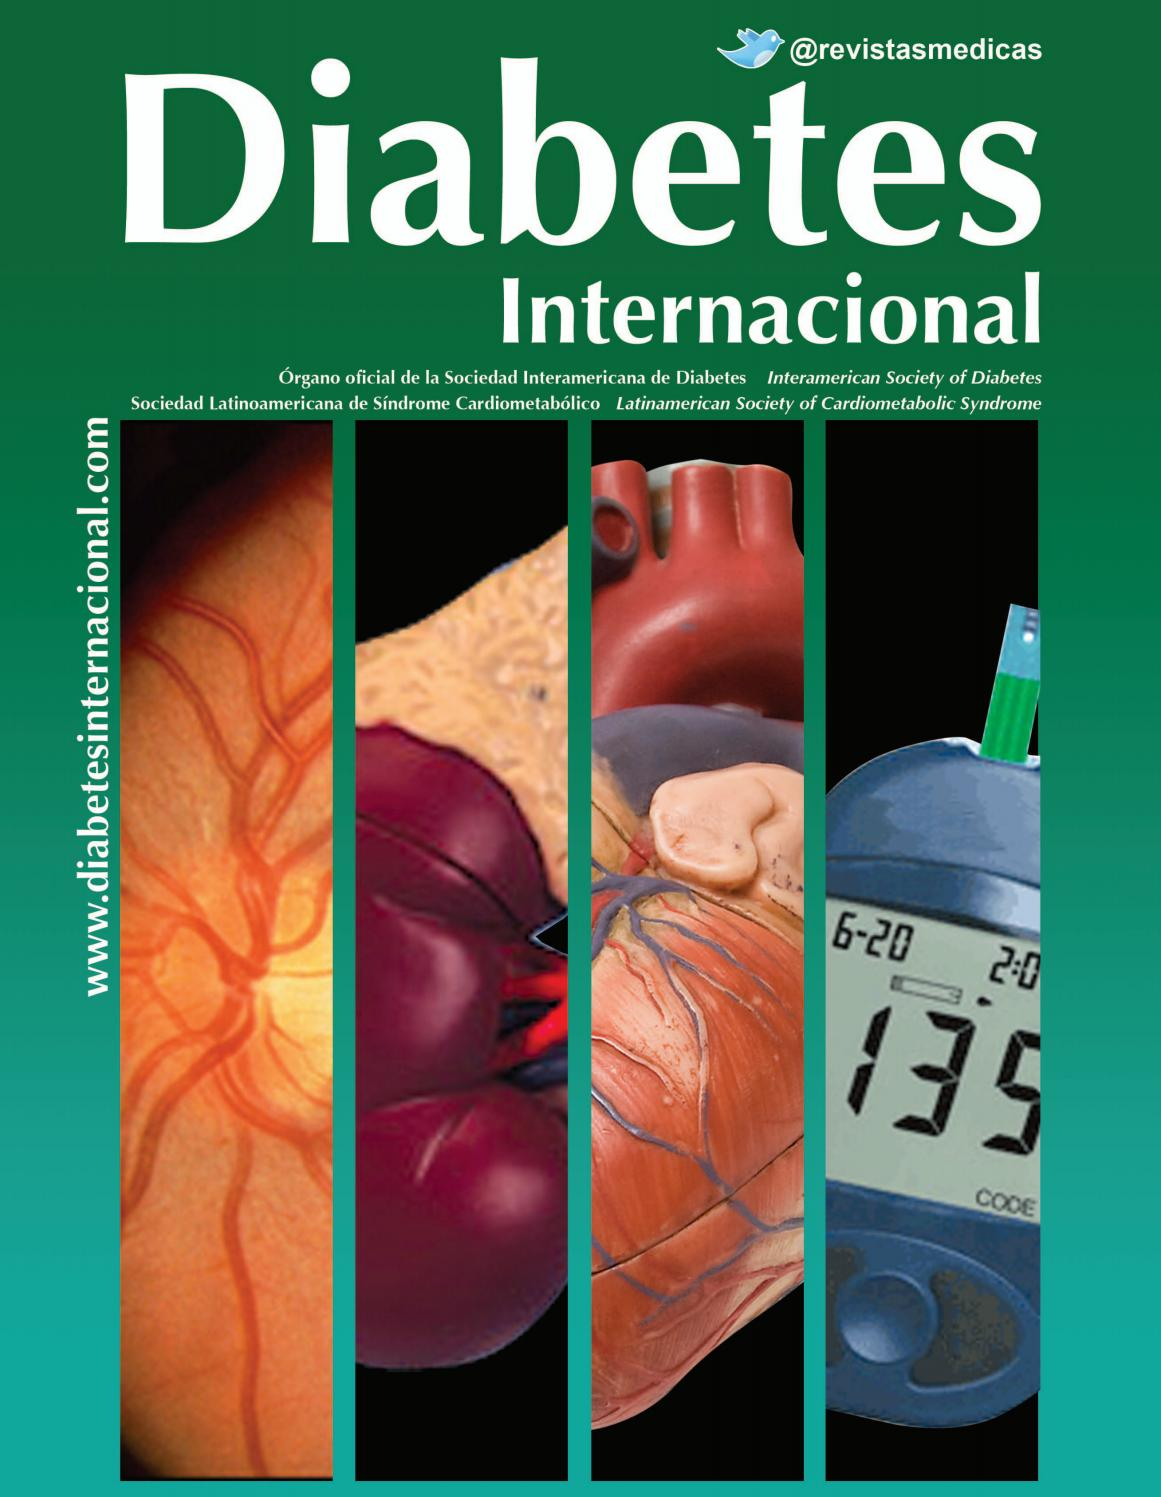 implantacion del cigoto sintomas de diabetes